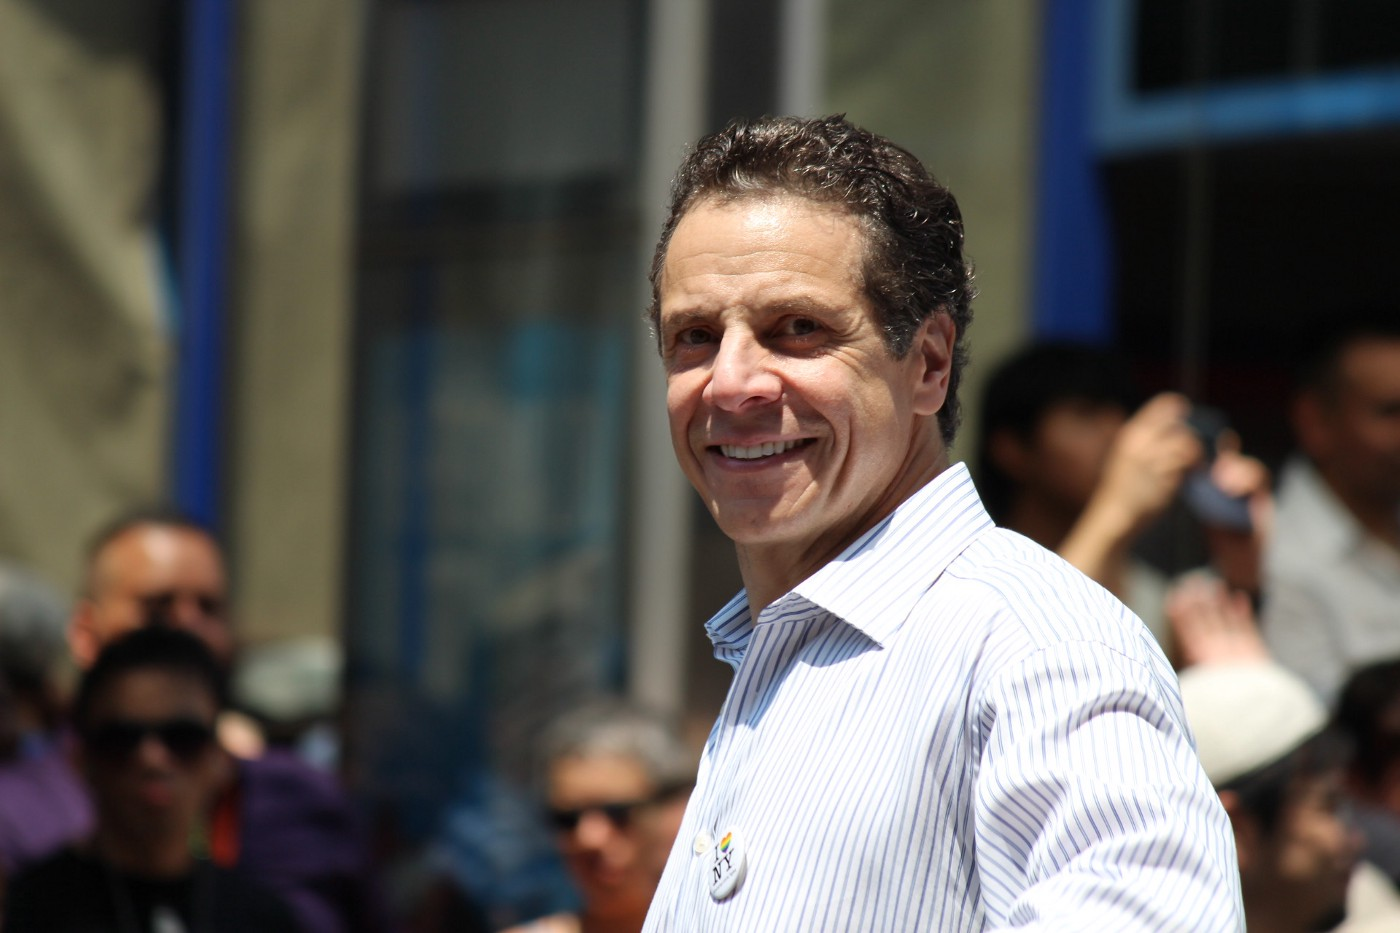 Andrew Cuomo standing on a city street smiling